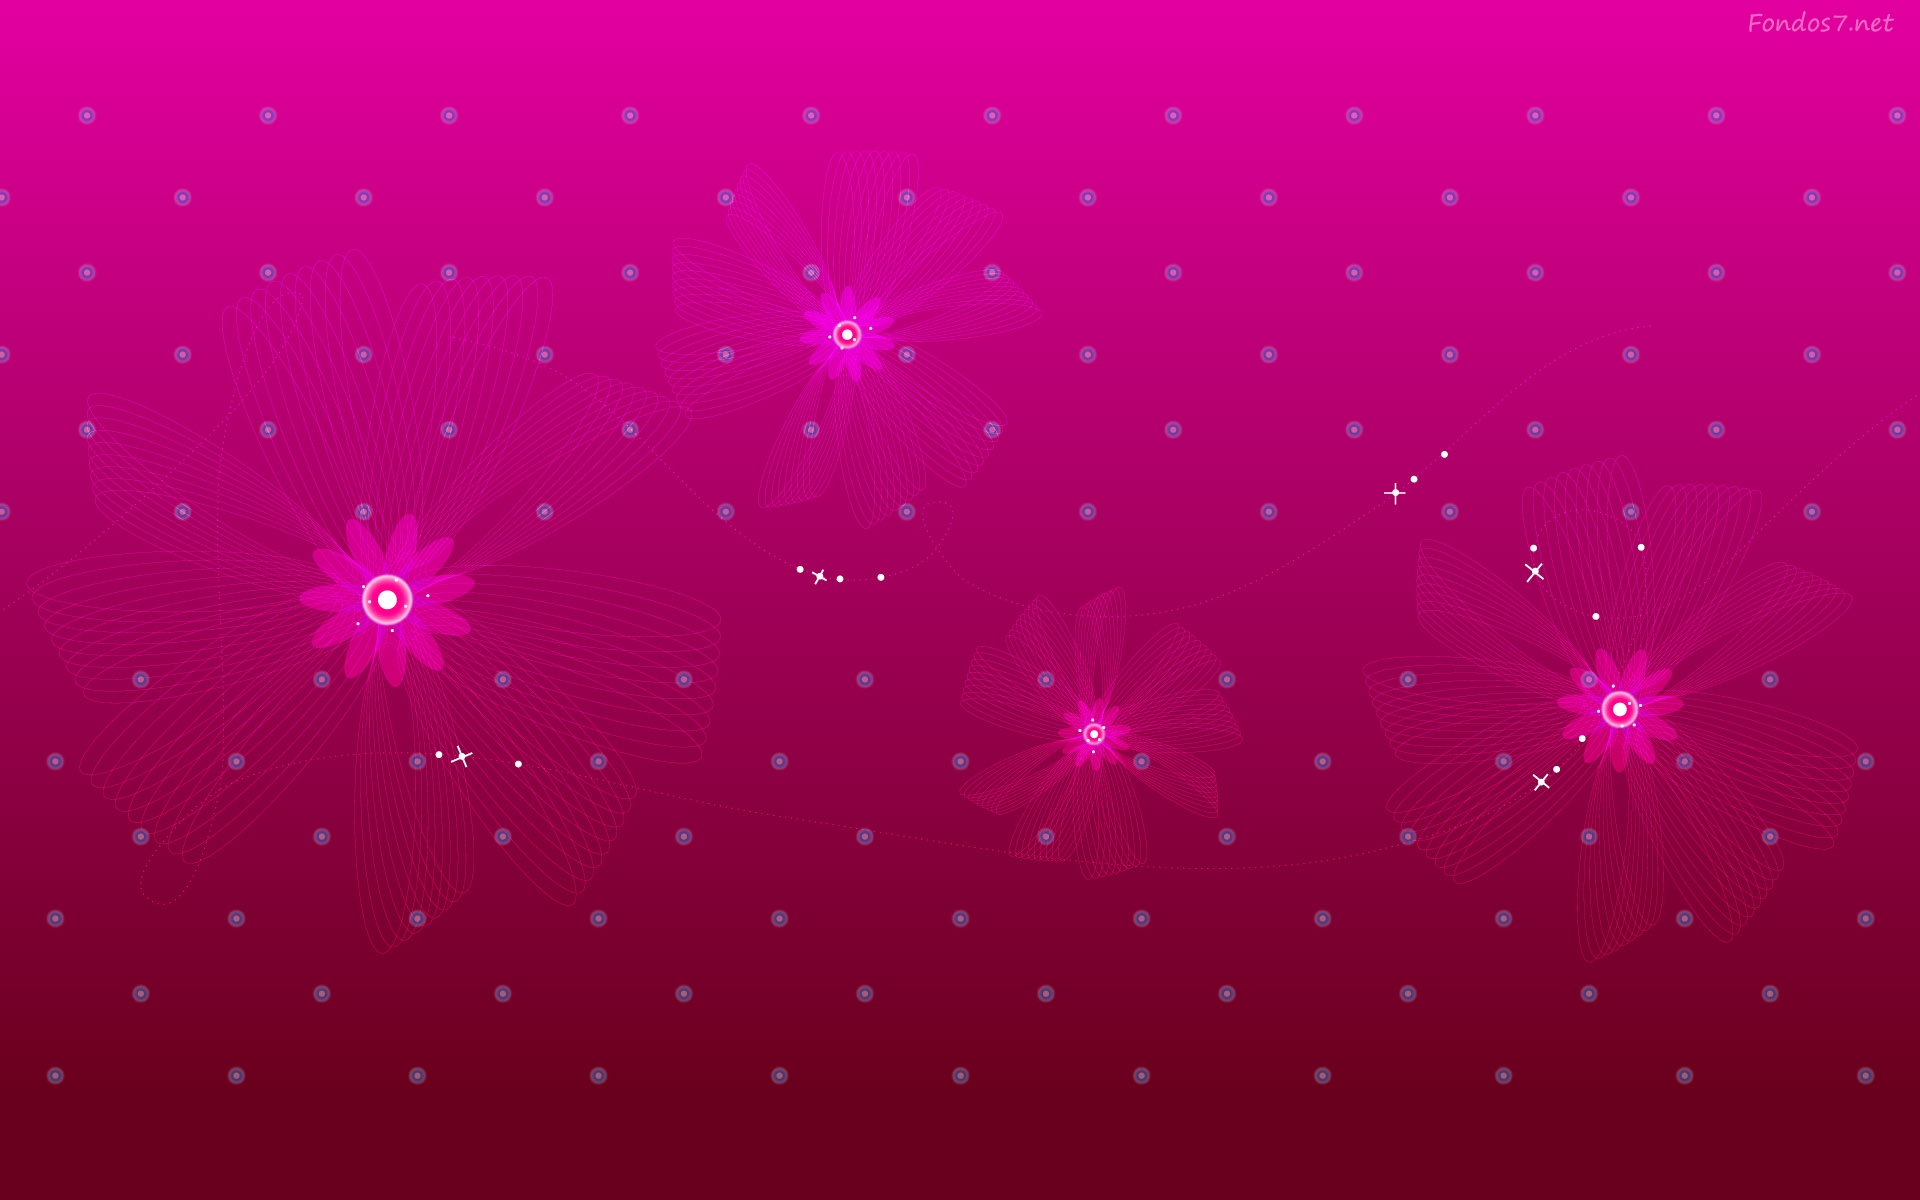 pink wallpaper widescreen original wallpapers 1920x1200 fondos7net 1920x1200